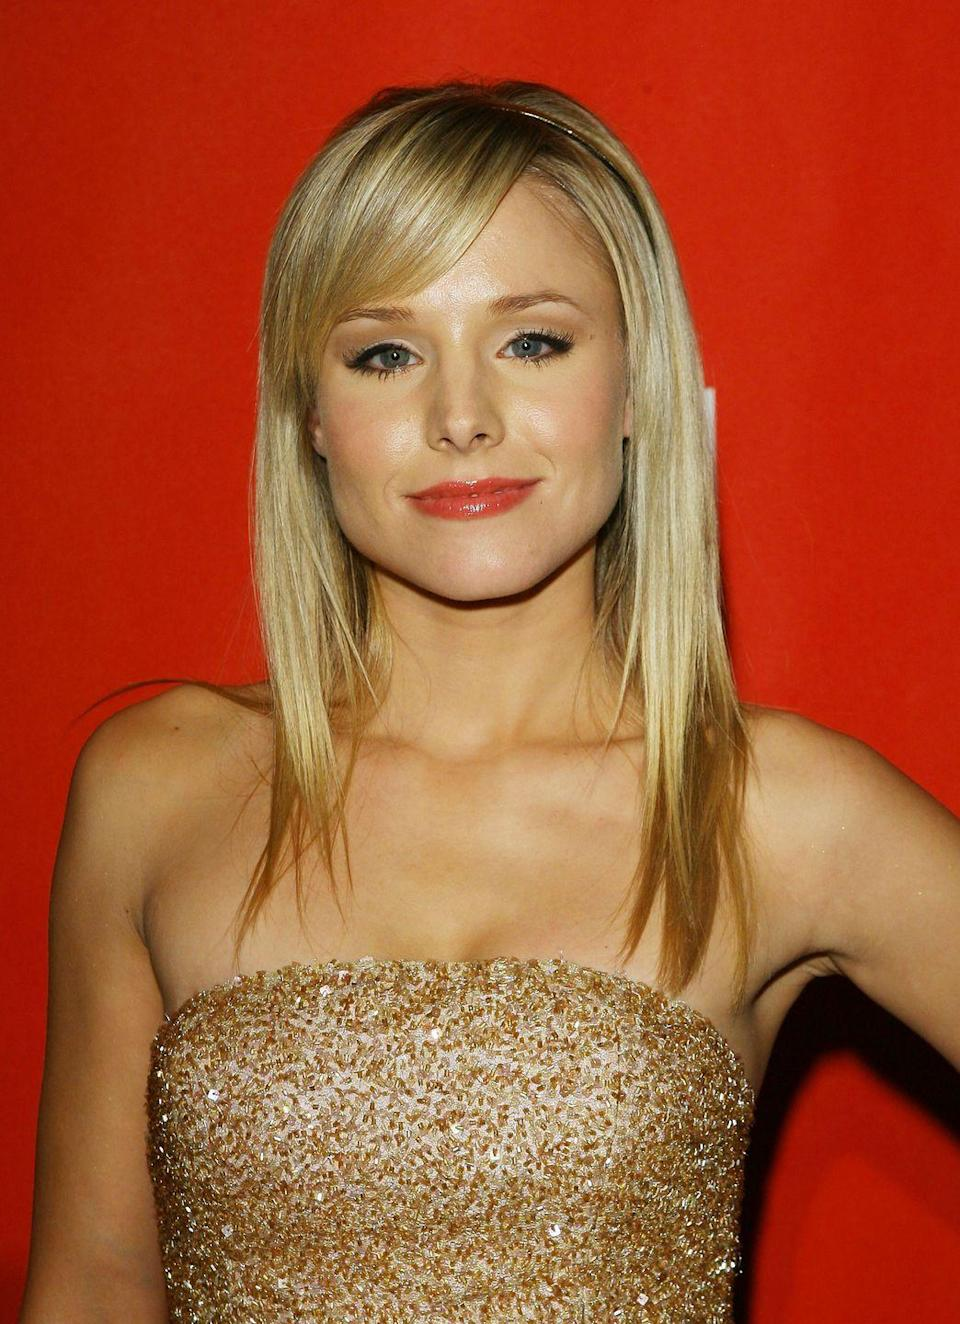 <p>You know the ominous-yet-soothing-AF voice of Gossip Girl that we never actually saw until the end of the series? Yep, Kristen Bell—an icon since her <em>Veronica Mars </em>days—was the <em>Gossip Girl</em> voiceover.</p>